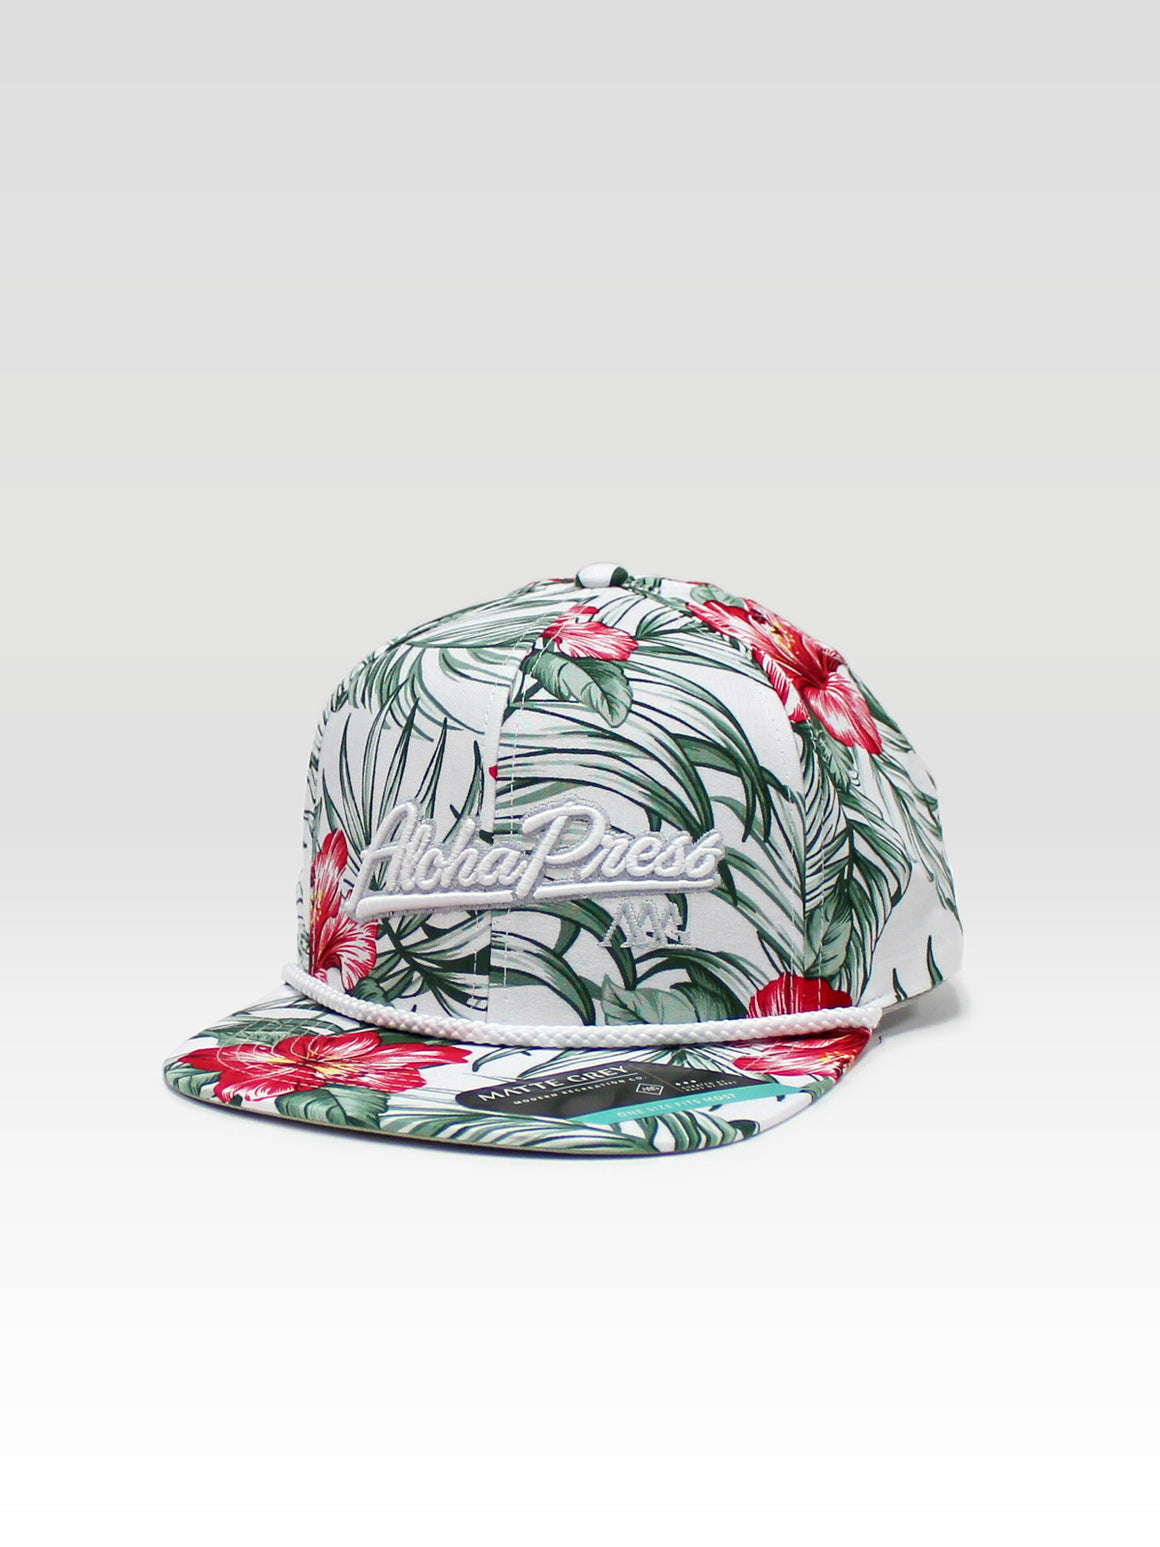 Aloha Press Strapback - White